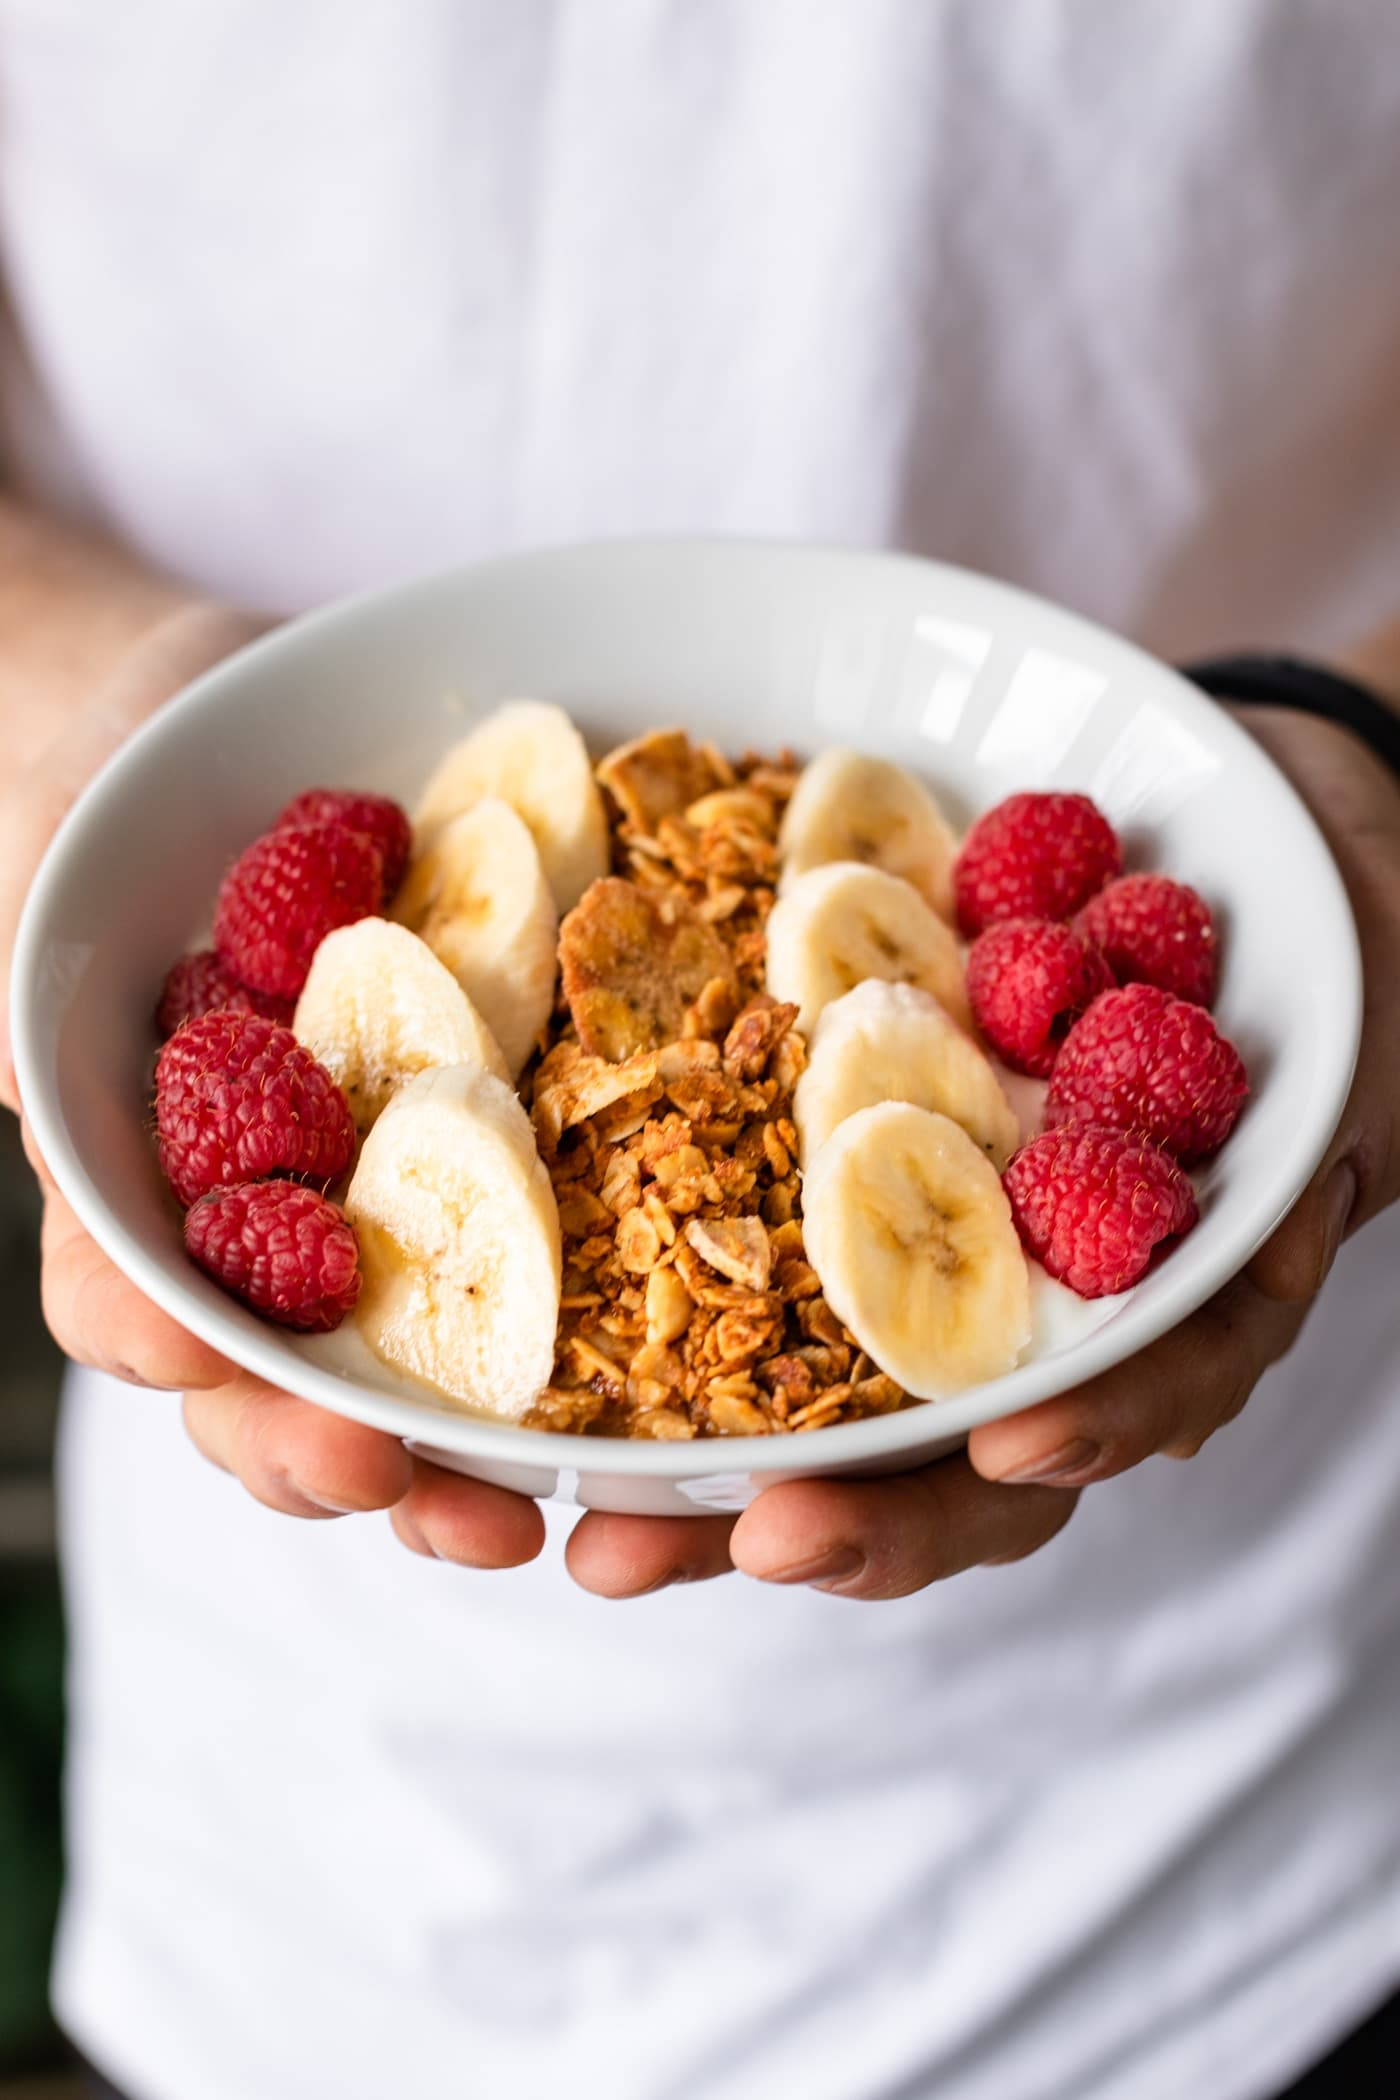 Hands holding bowl of peanut butter granola with white shirt and black pants in background